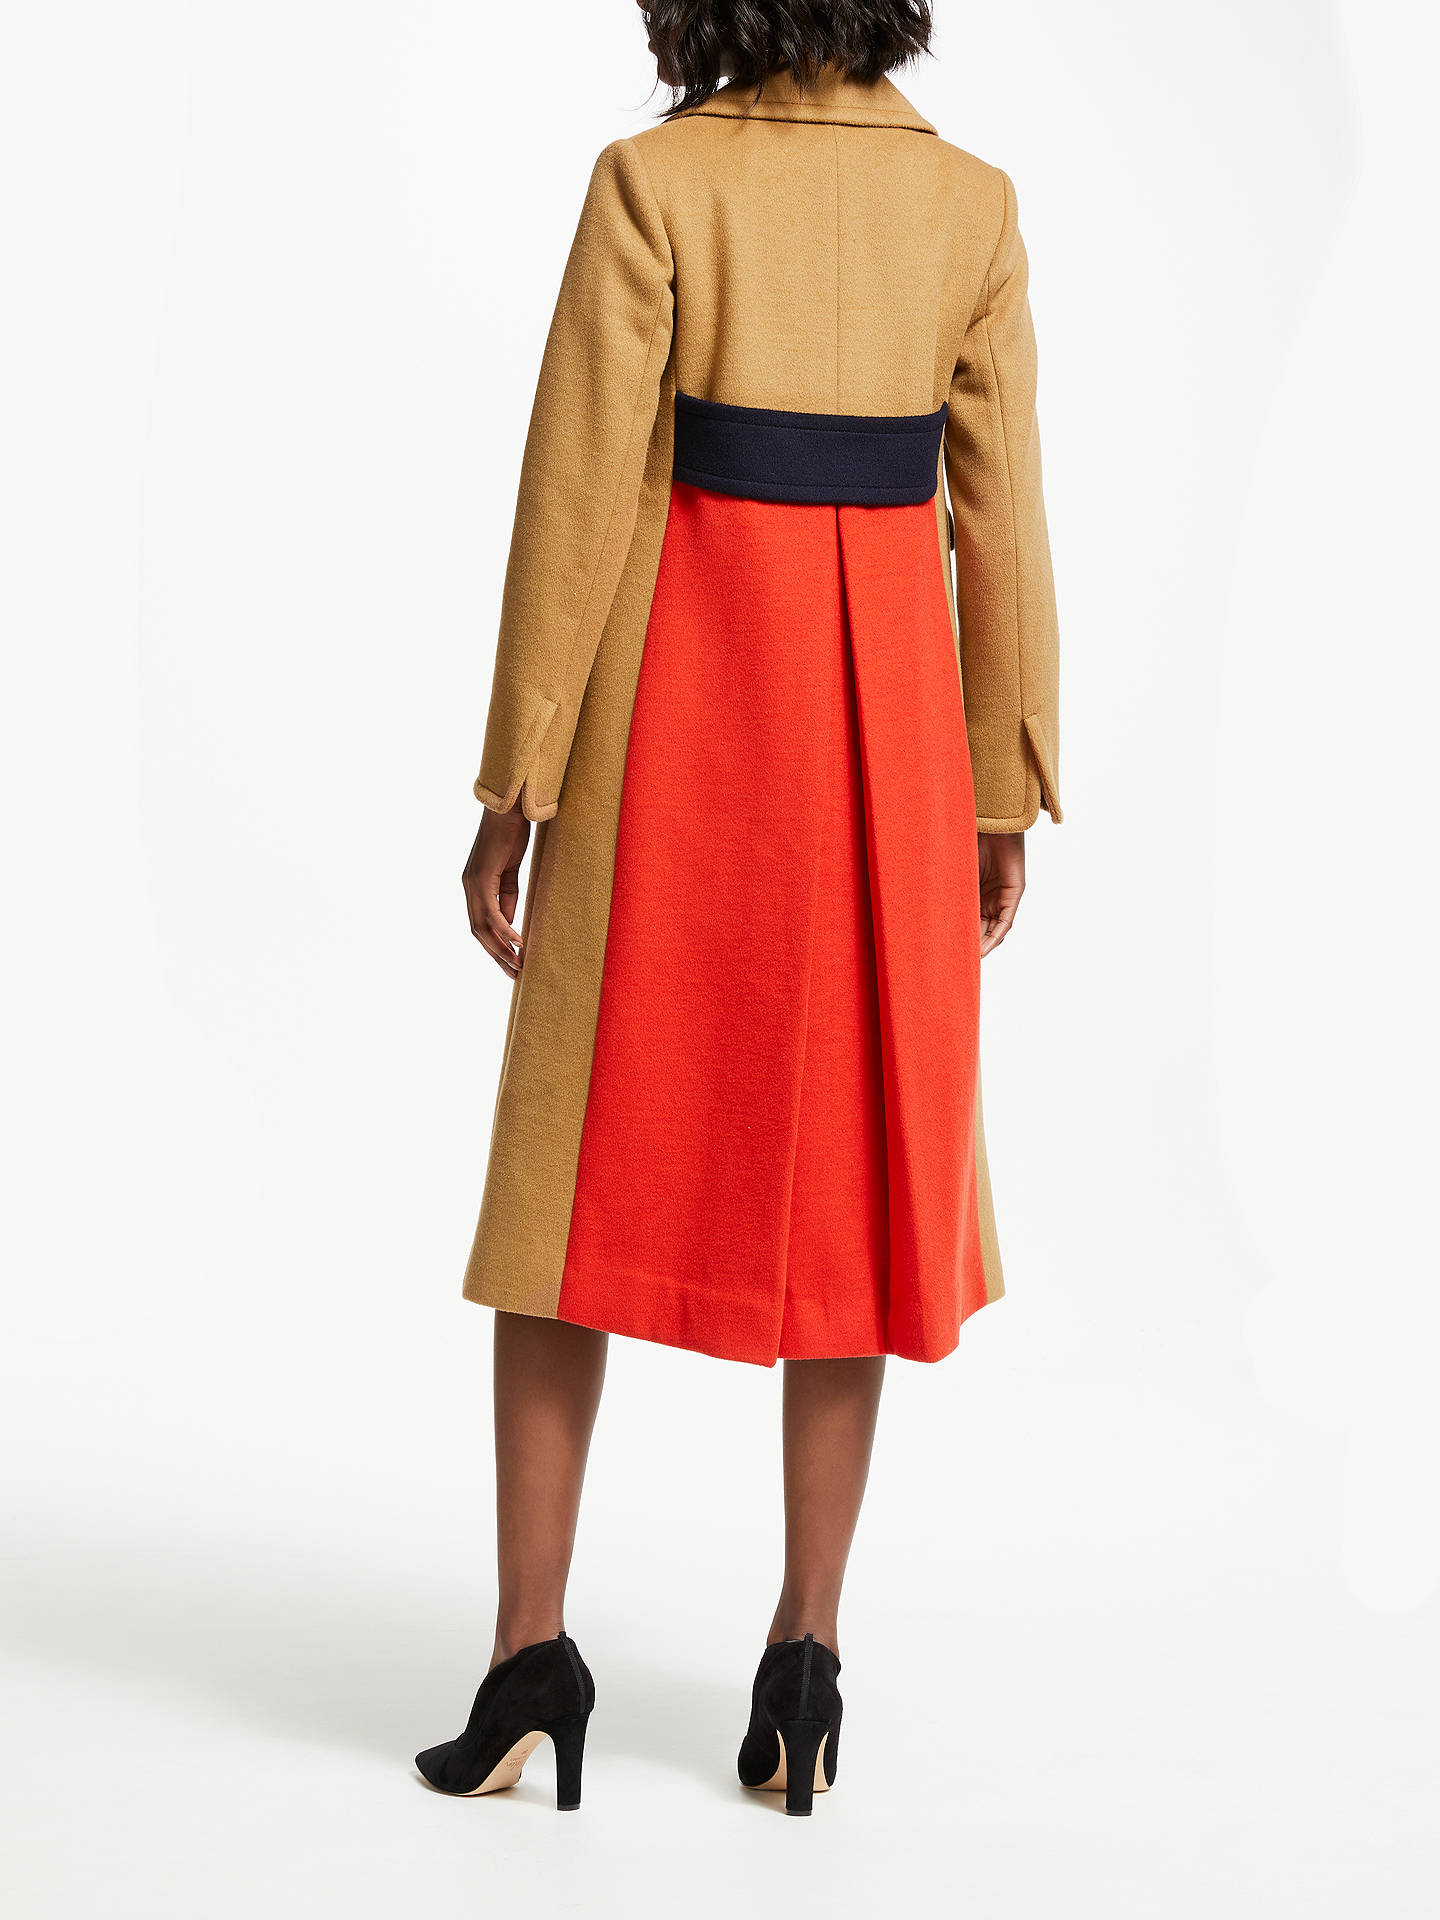 BuyBoden Farleigh Coat, Camel, 12 Online at johnlewis.com